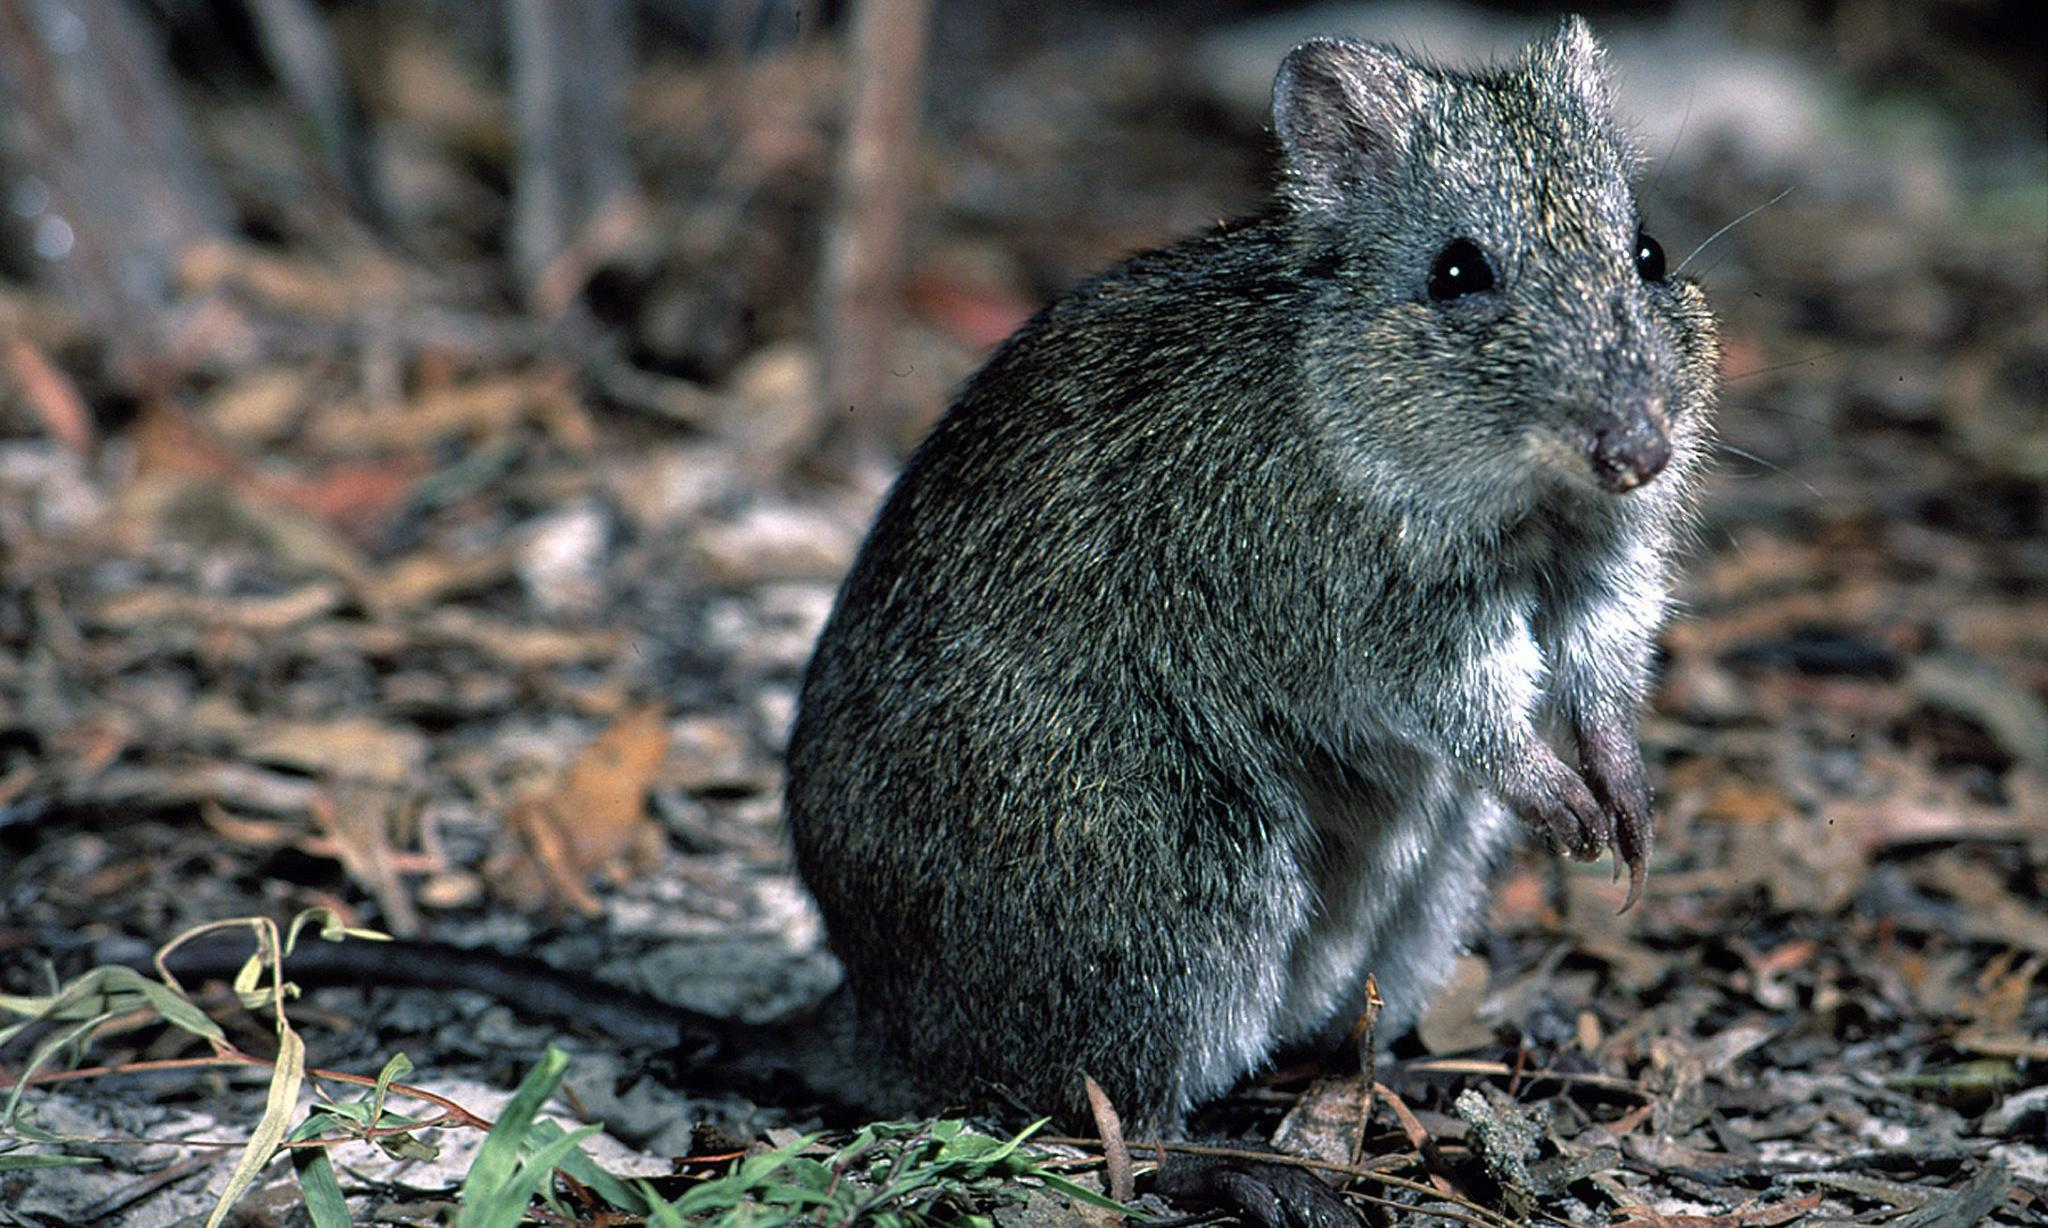 'No clue': environment department doesn't know if threatened species plans implemented